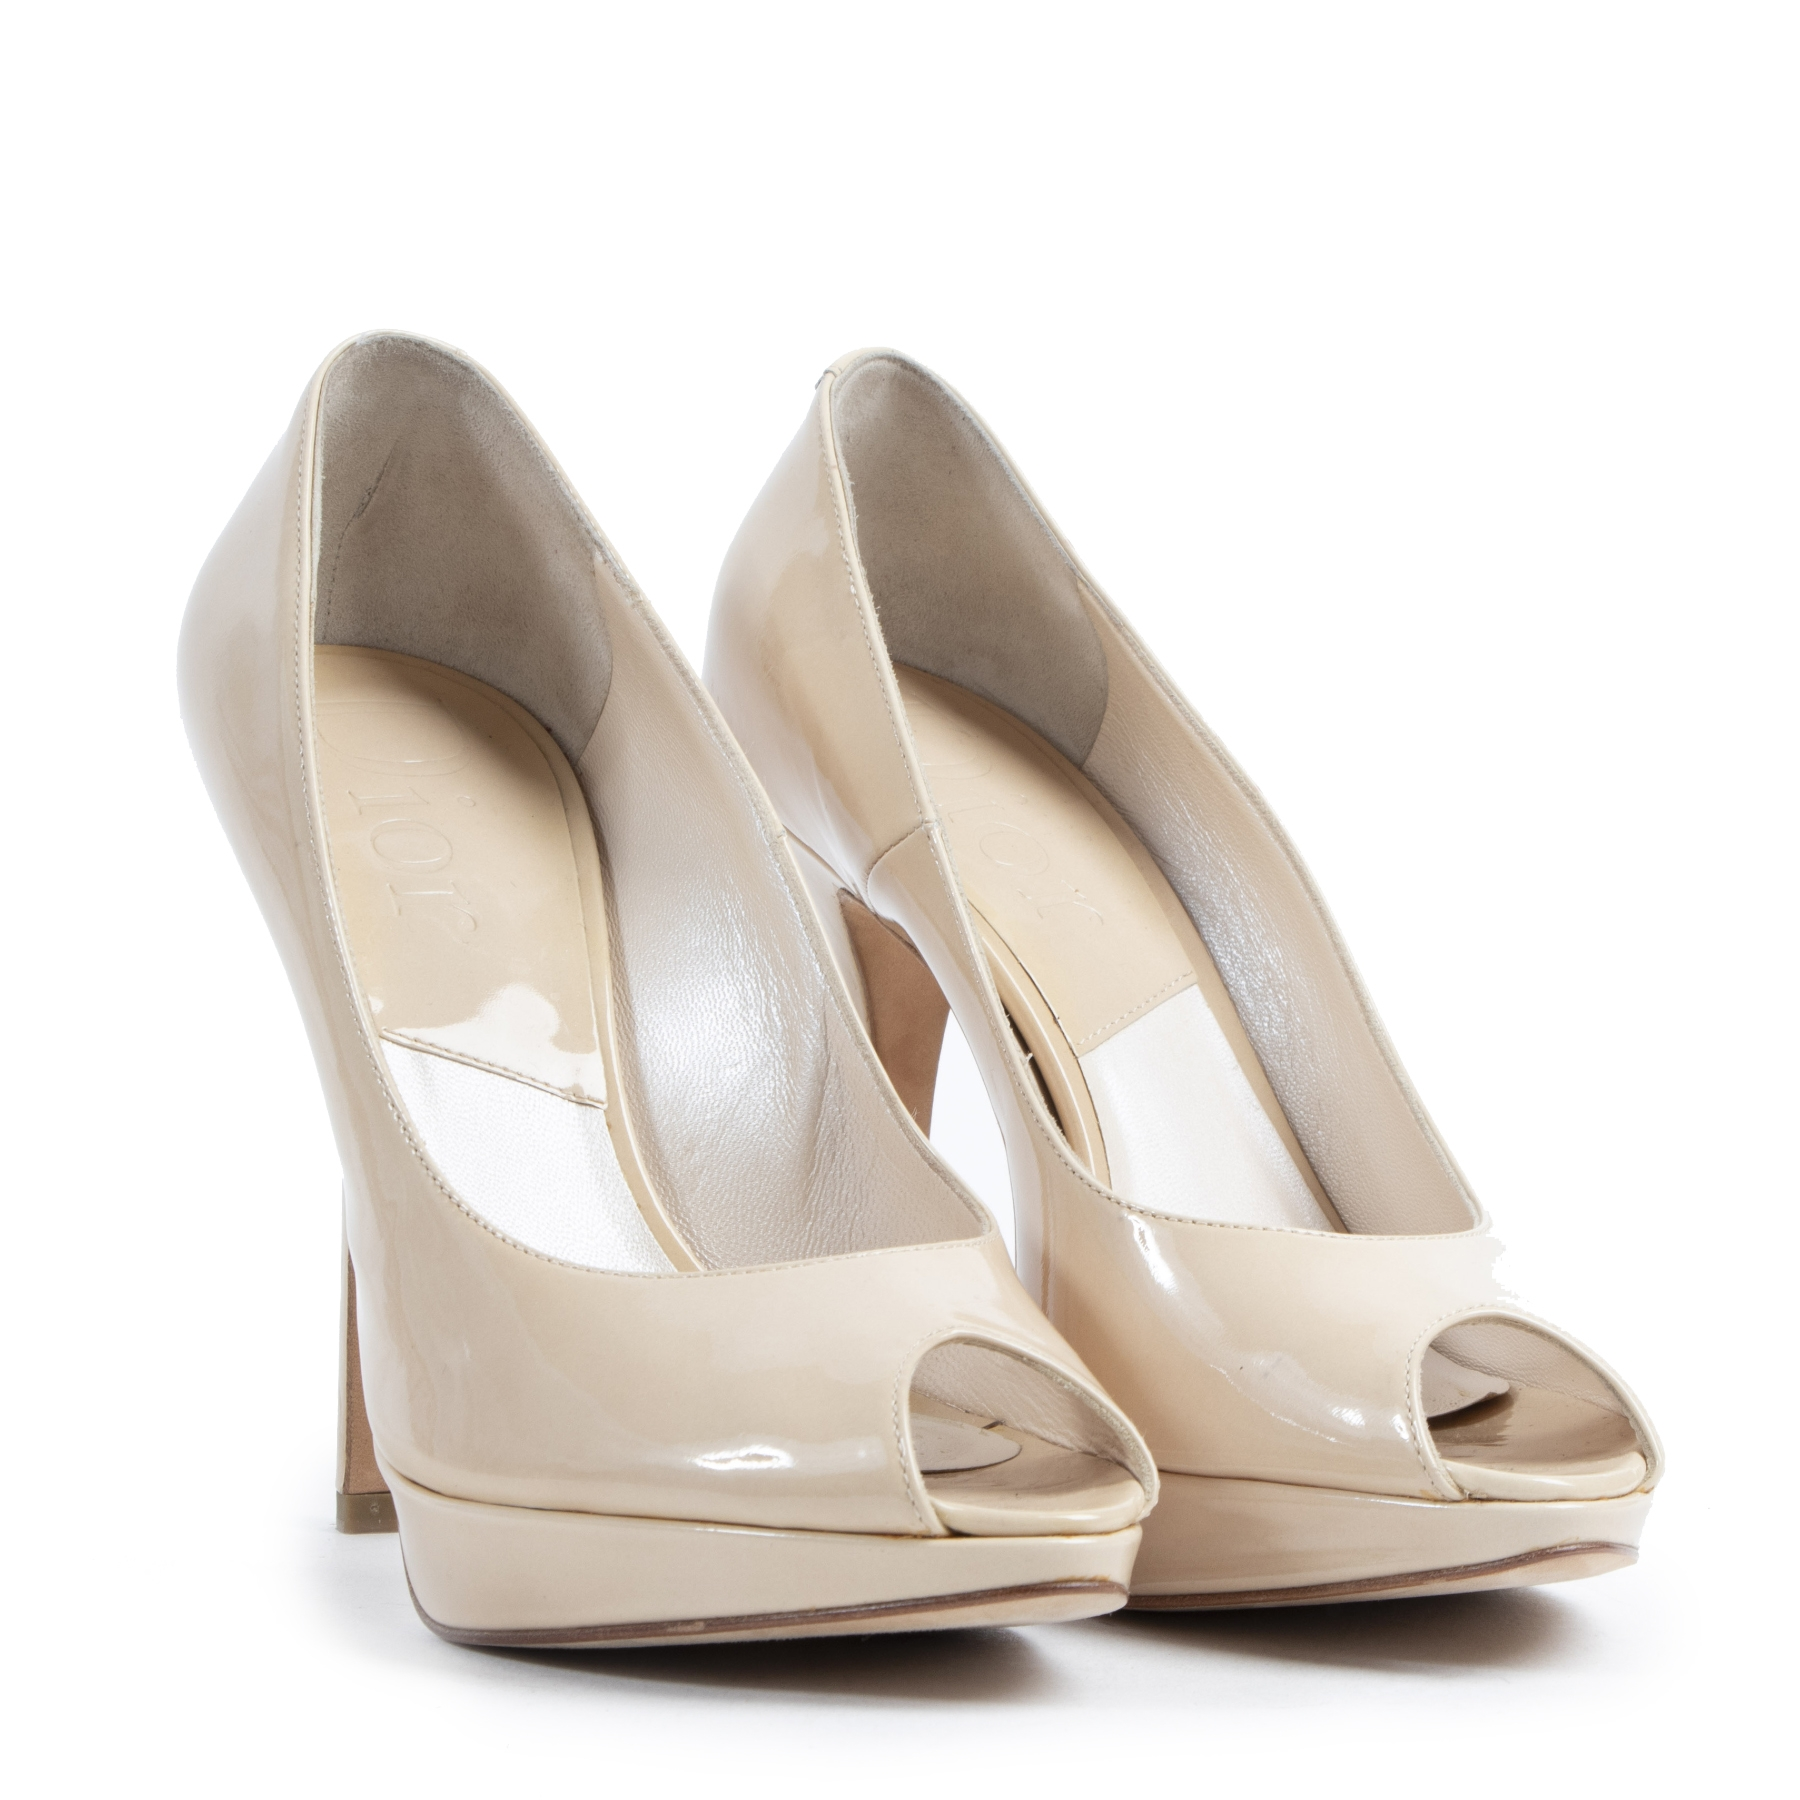 Authentieke tweedehands vintage Dior Nude Patent Leather Open Toe Pumps - Size 37 koop online webshop LabelLOV